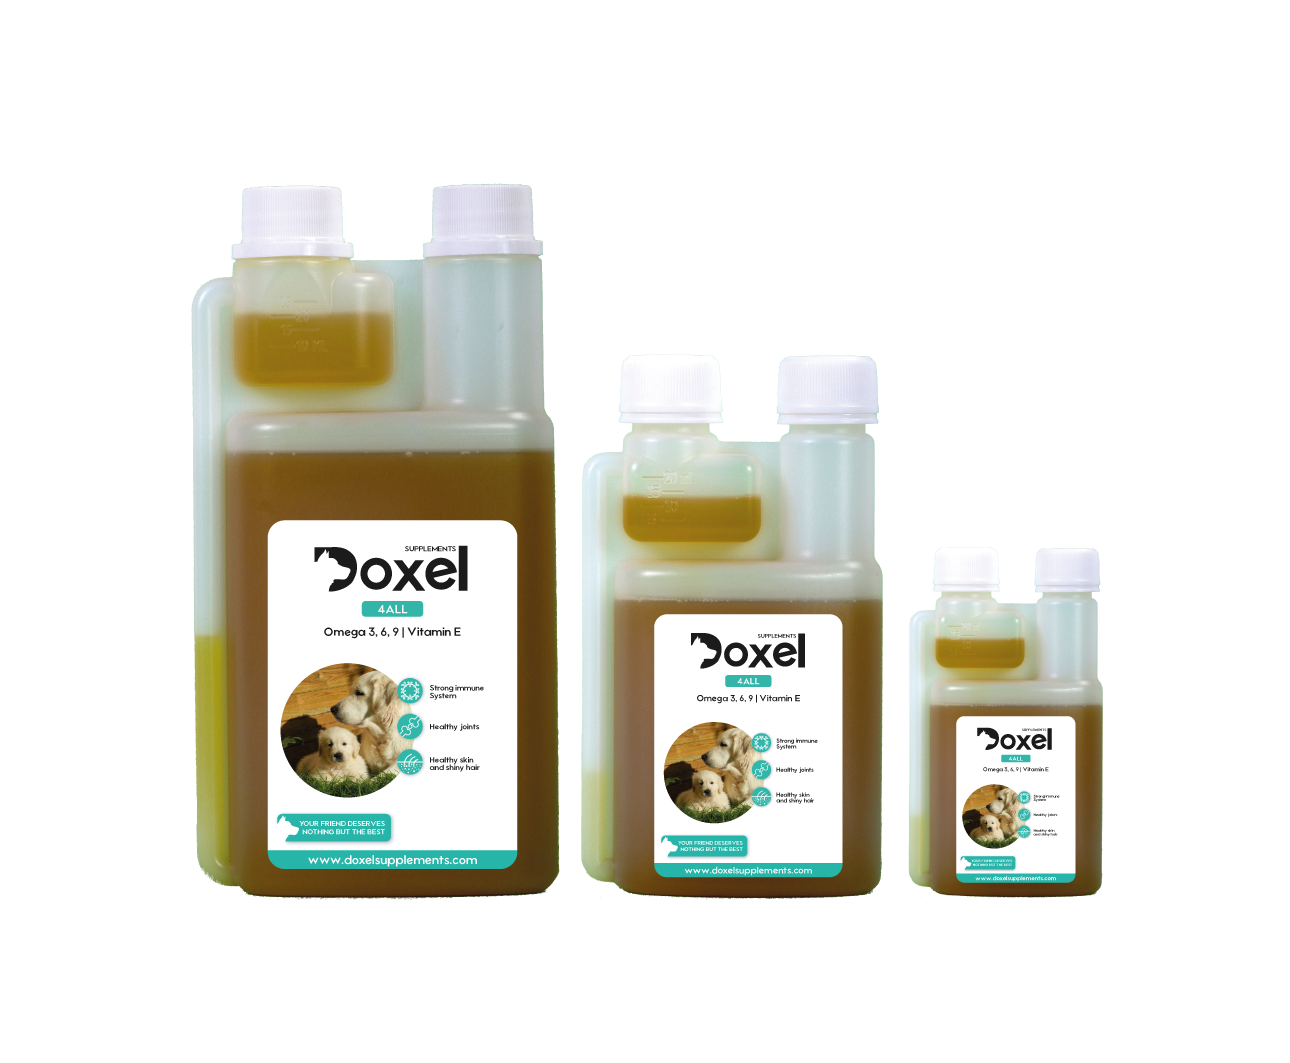 DOXEL 4ALL 1l